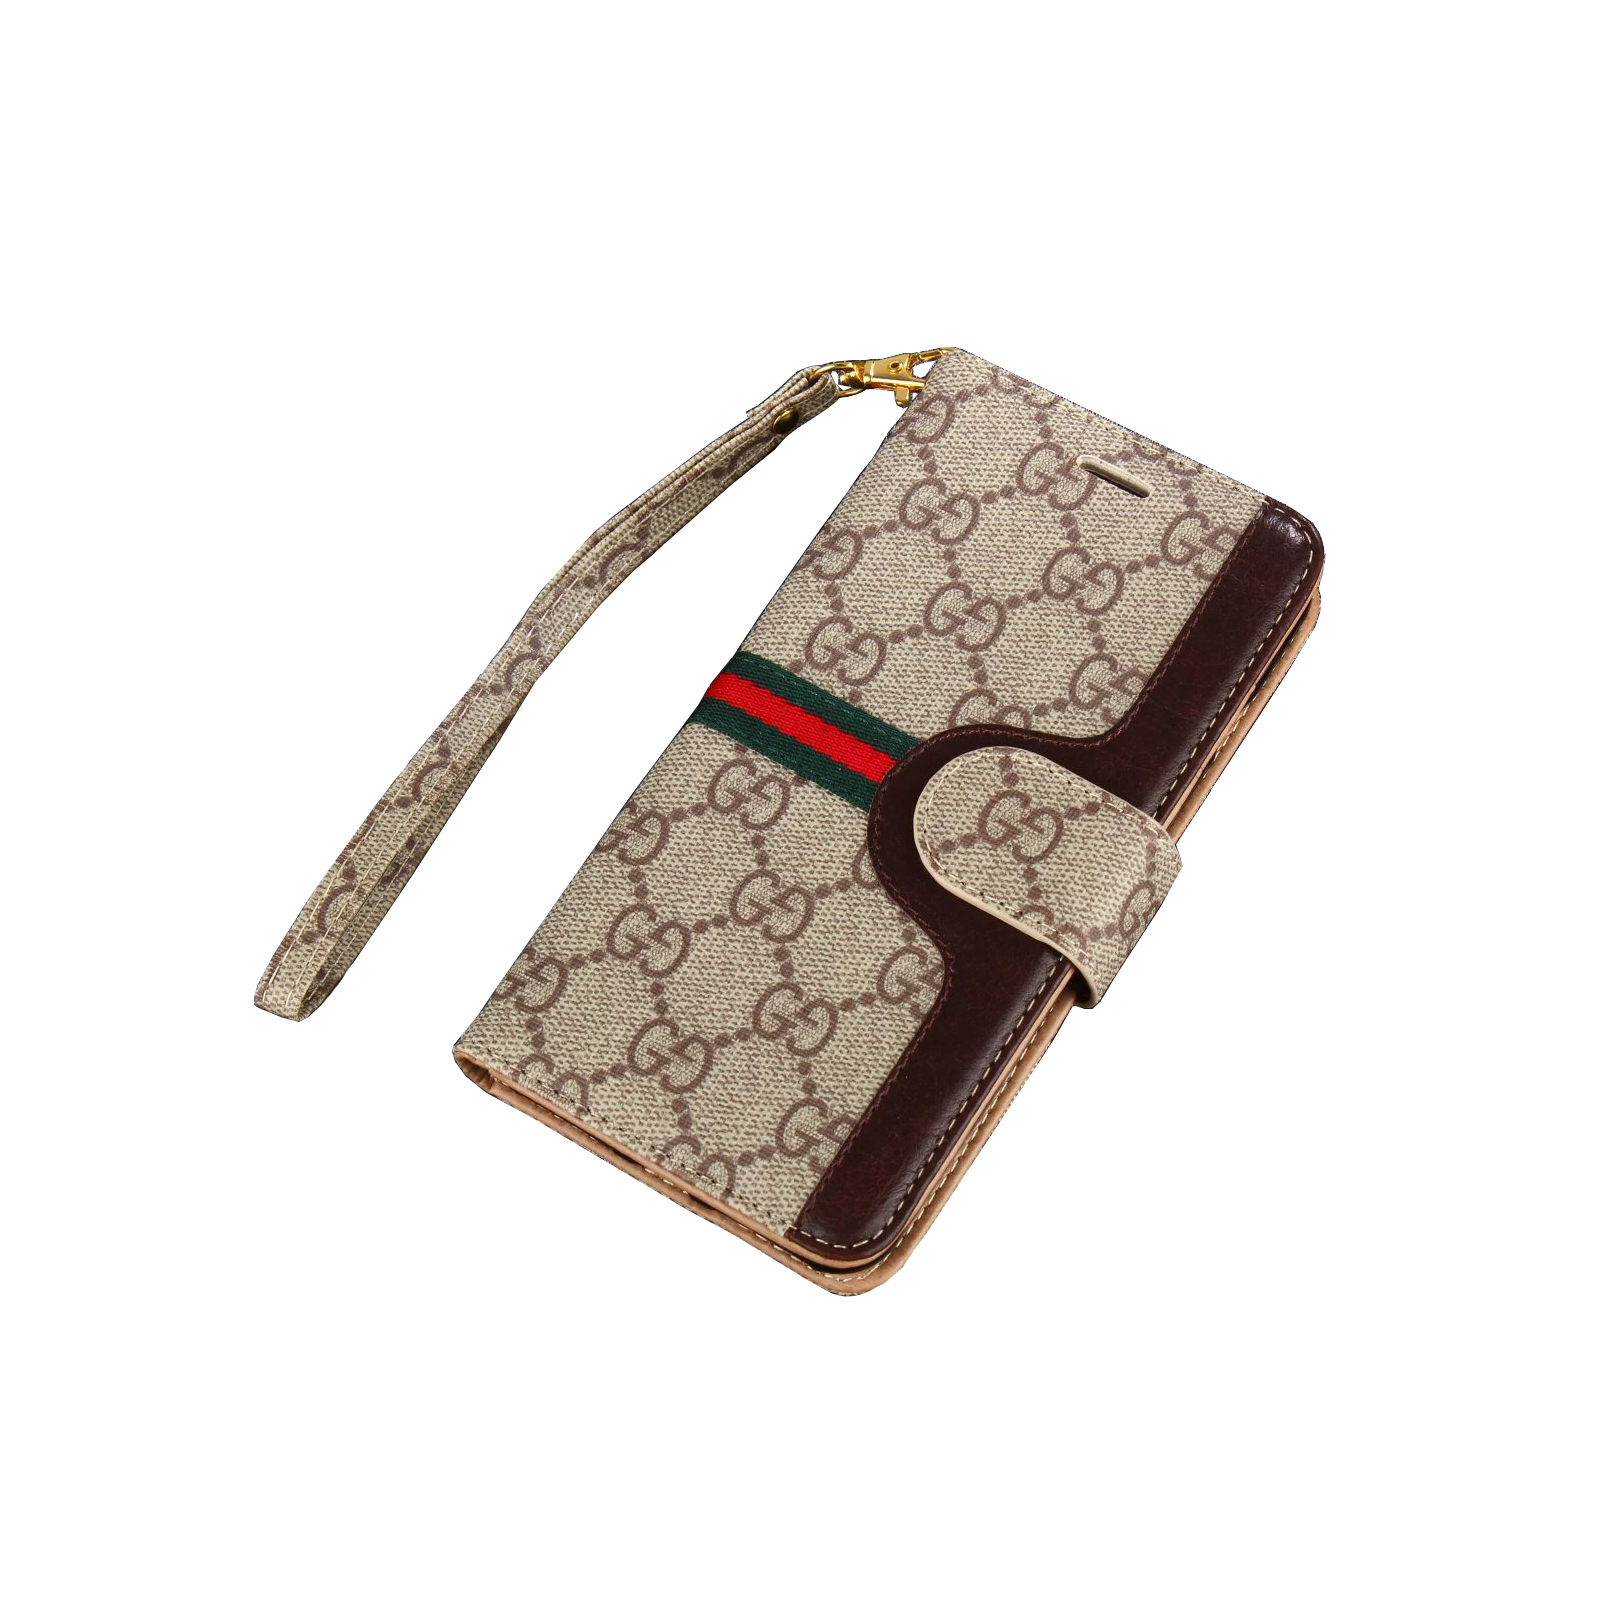 schutzhülle iphone coole iphone hüllen Gucci iphone6 plus hülle htc one ca6 elbst gestalten iphone leder hülle handyhülle bedrucken las6n iphone 6 Plus hülle apple designer iphone hüllen handy cover 6lbst erstellen